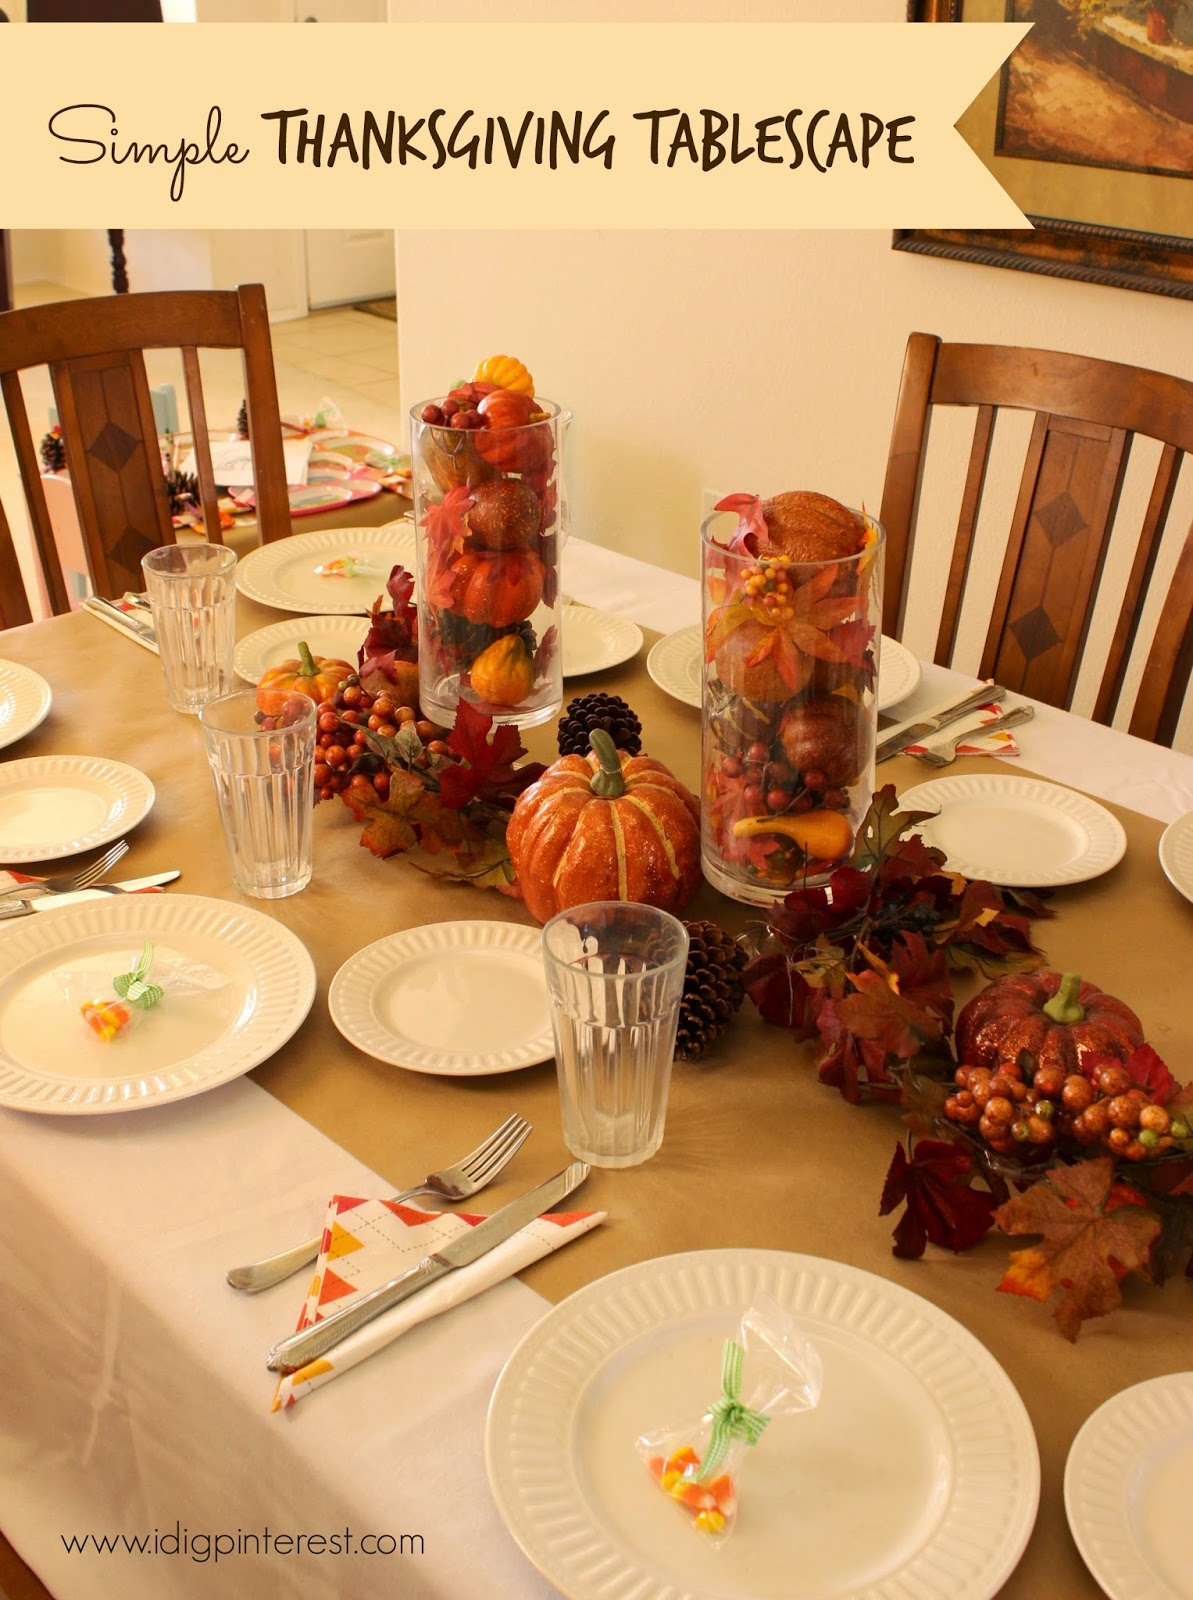 Simple Thanksgiving Tablescape I Dig Pinterest